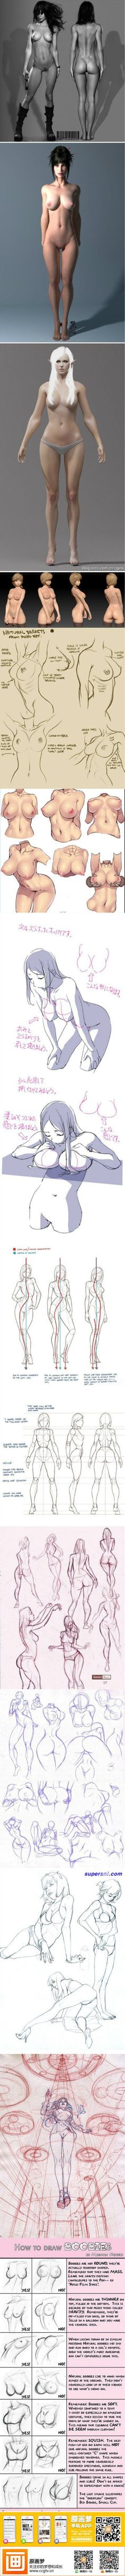 Body anatomy. How to draw ㅛfemale body.:ㅗㅗ